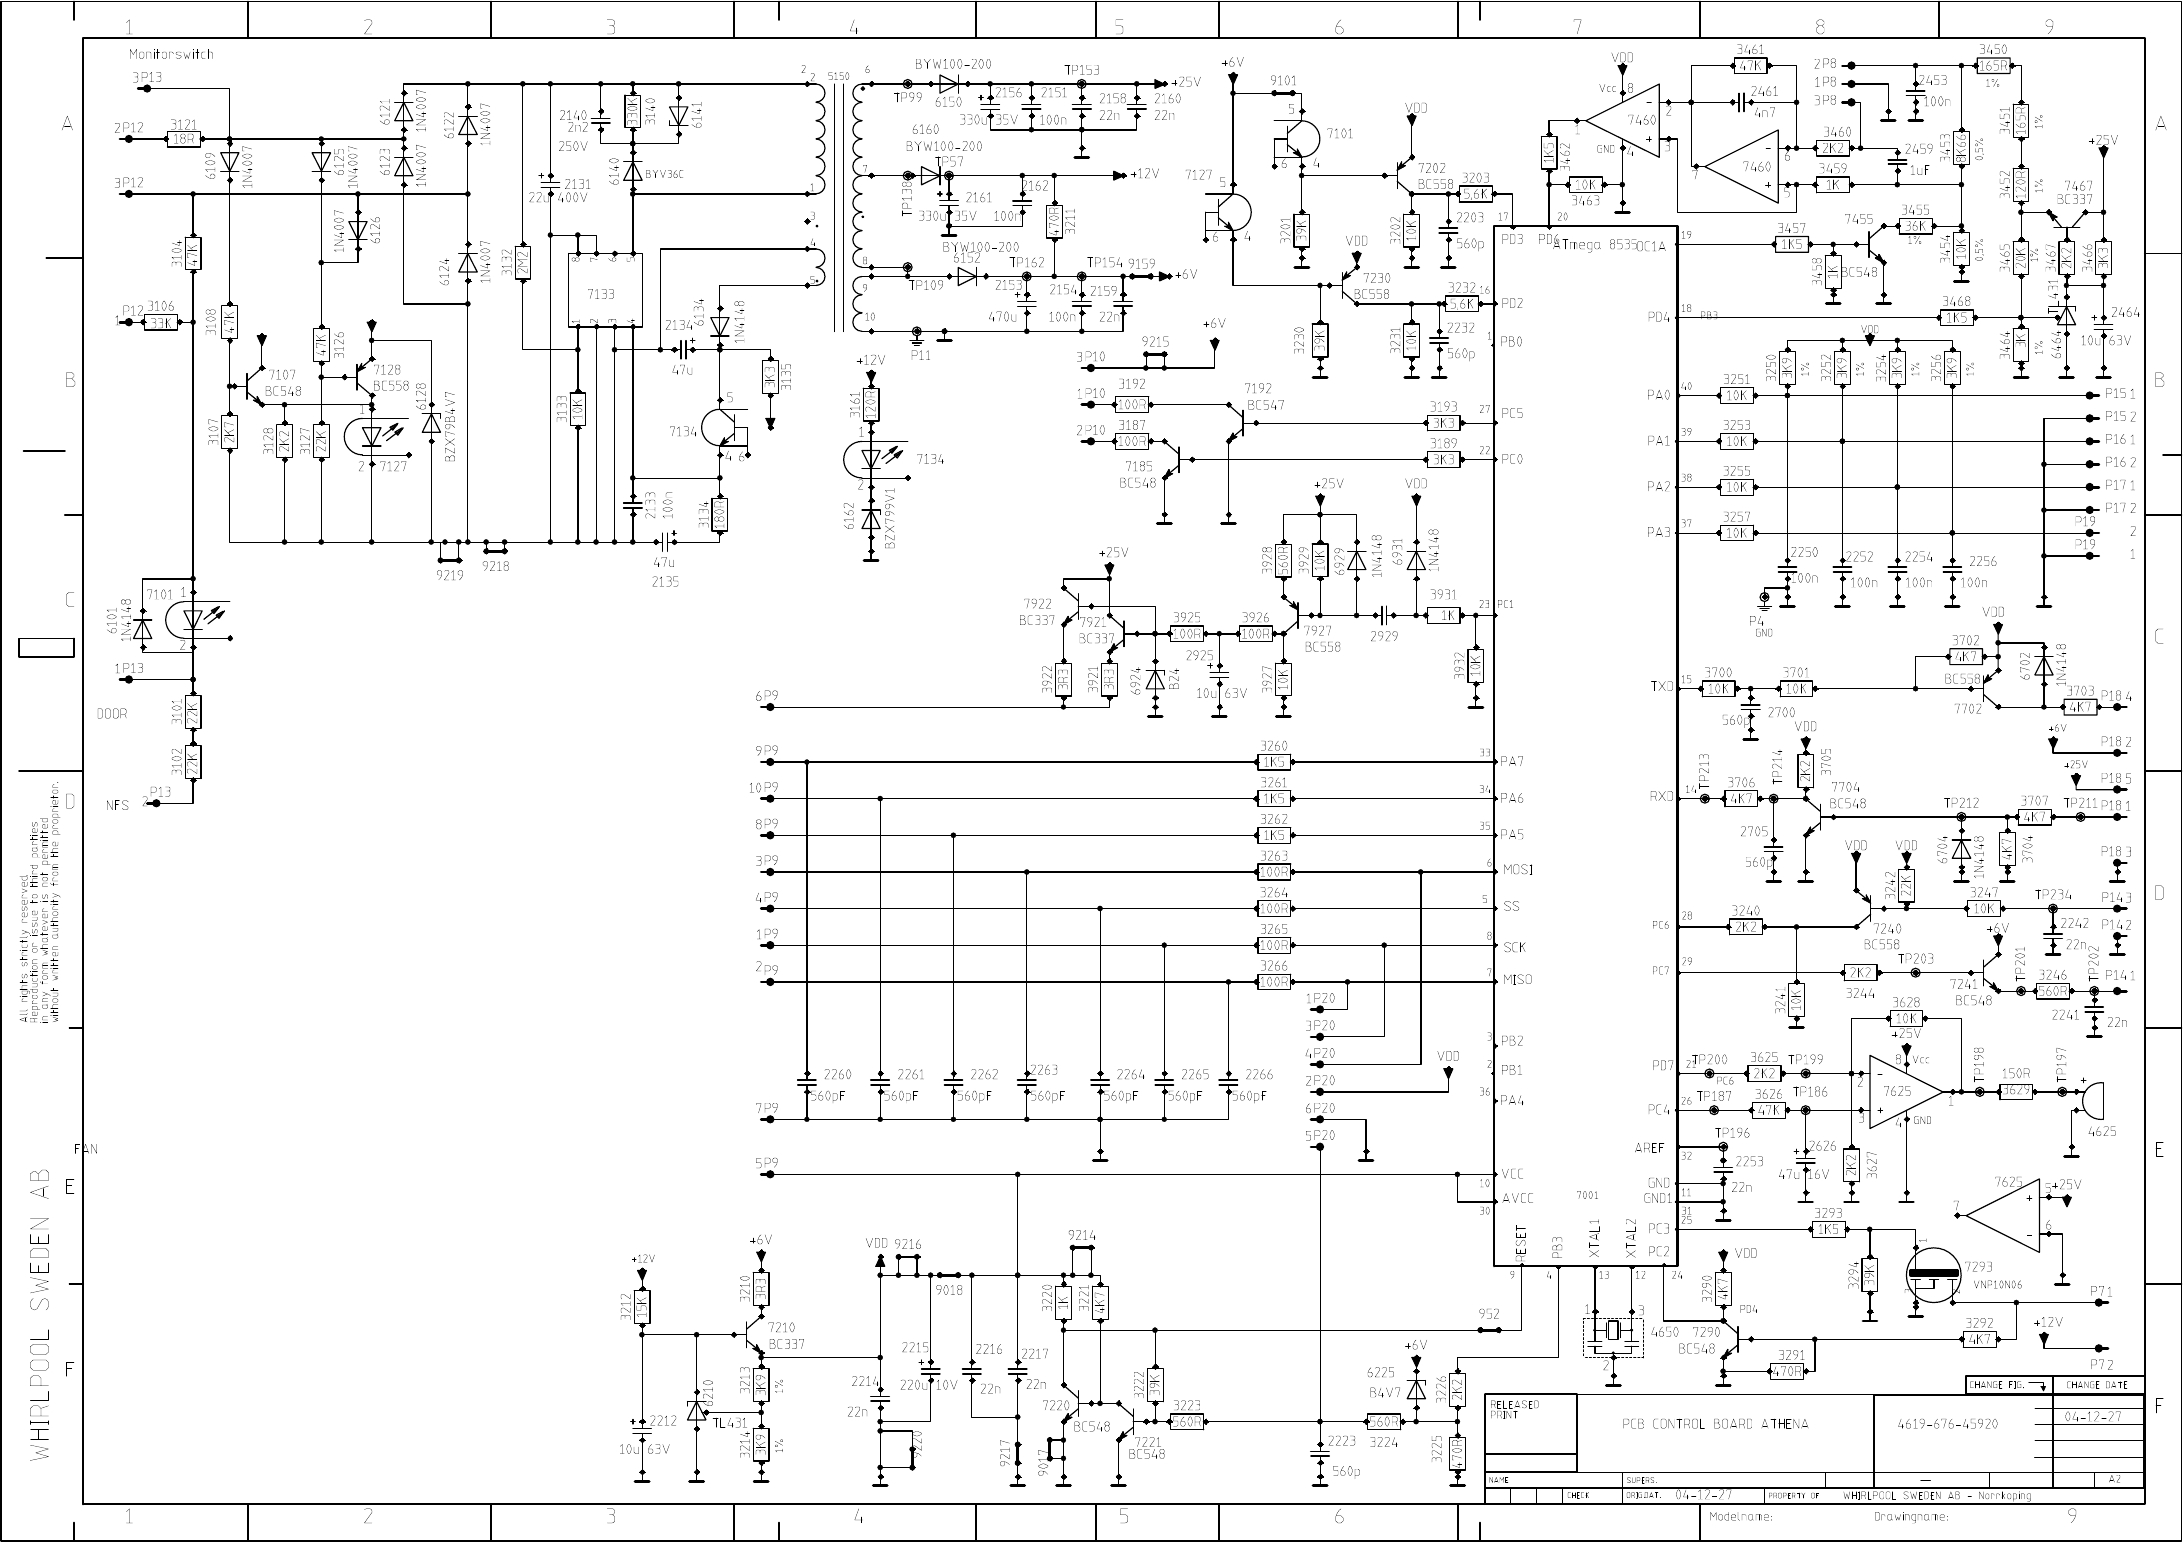 Wolf Microwave Wiring Diagram - 93 Ford Mustang Alternator Wiring Diagram |  Bege Wiring Diagram | Wolf Microwave Wiring Diagram |  | Bege Wiring Diagram